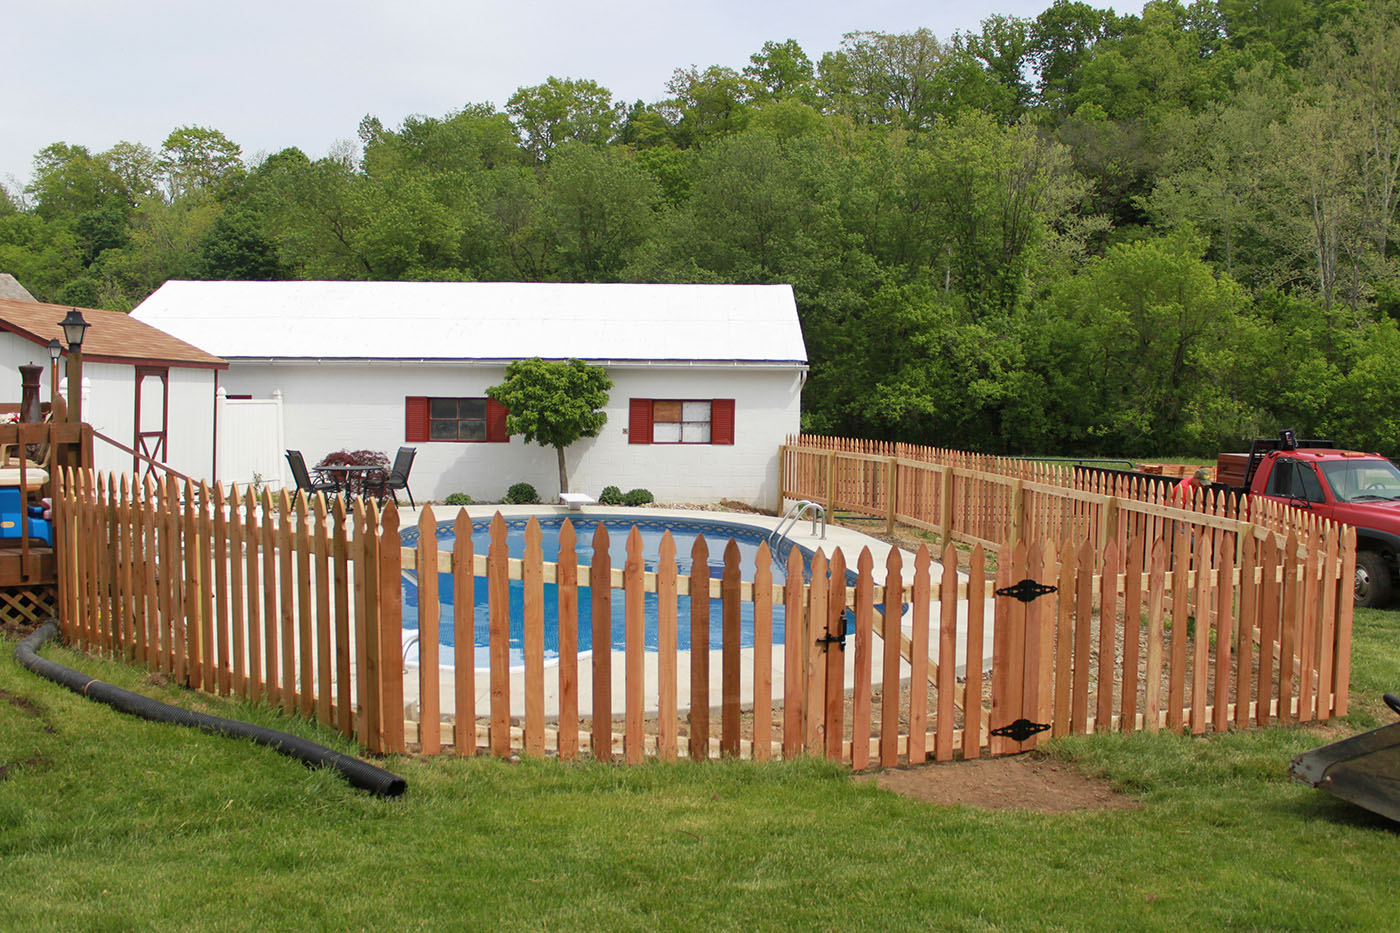 Strauss Fence Company - New Concord, Ohio - Swimming Pool Fence